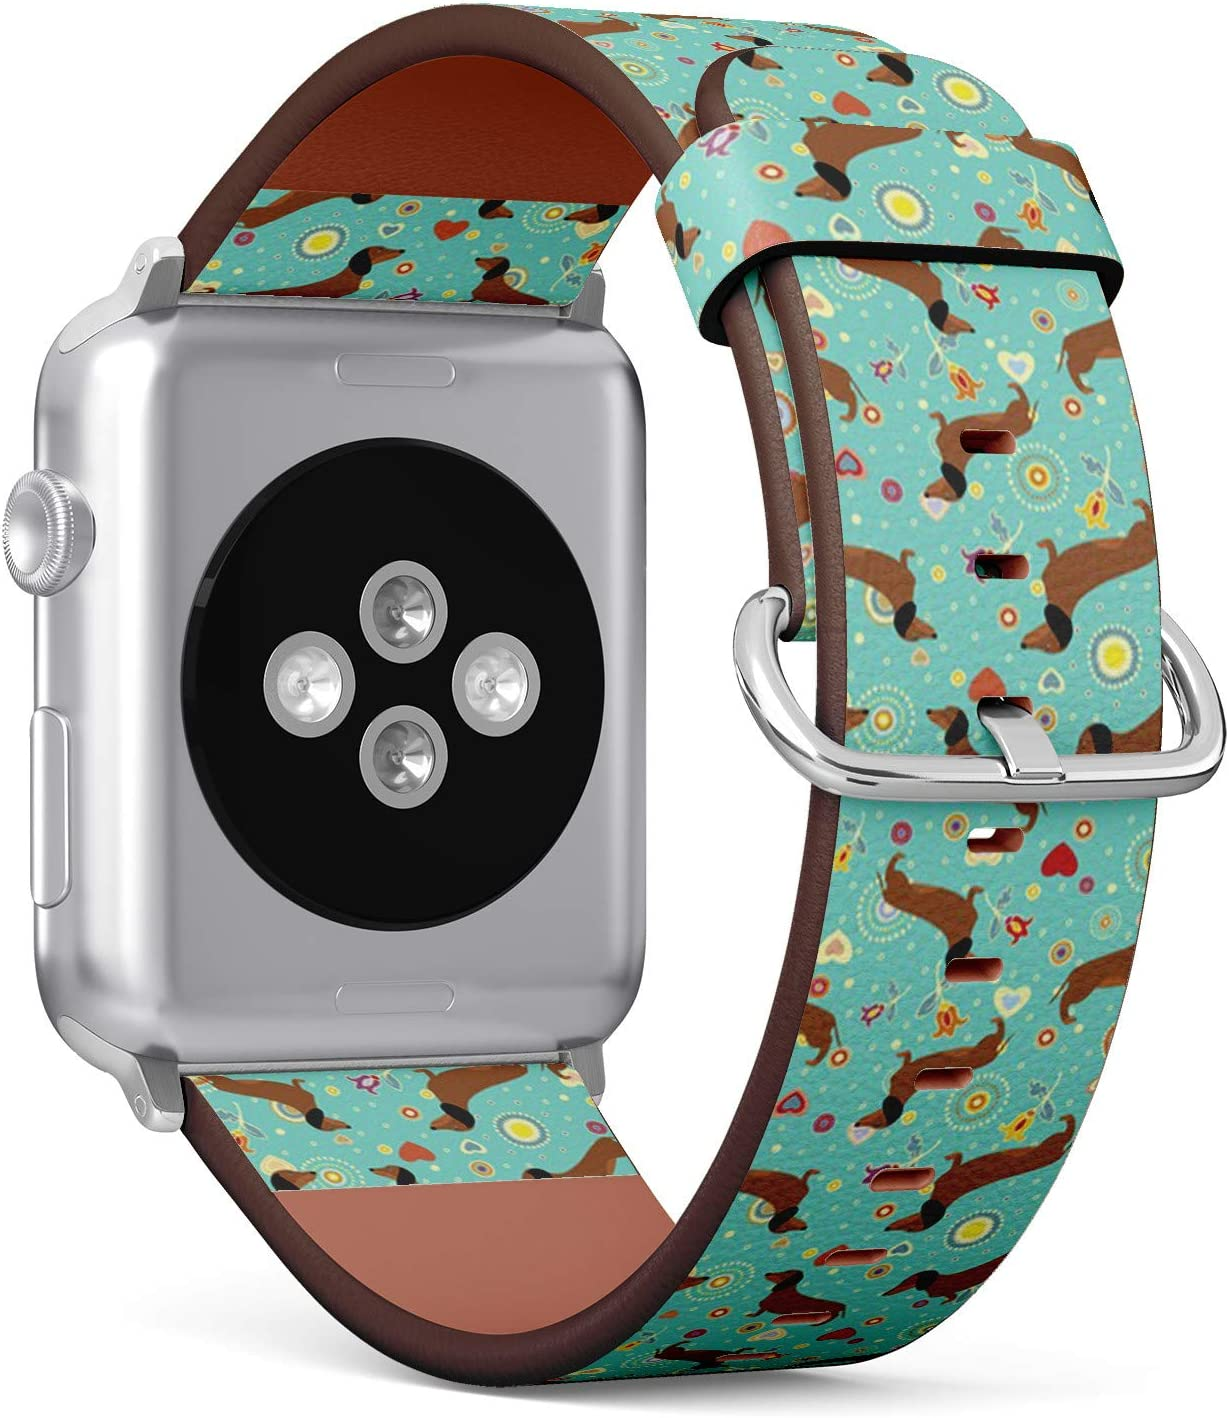 Compatible with Apple Watch (Small Version) 38 / 40mm Leather Wristband Bracelet with Stainless Steel Clasp and Adapters - Dachshunds